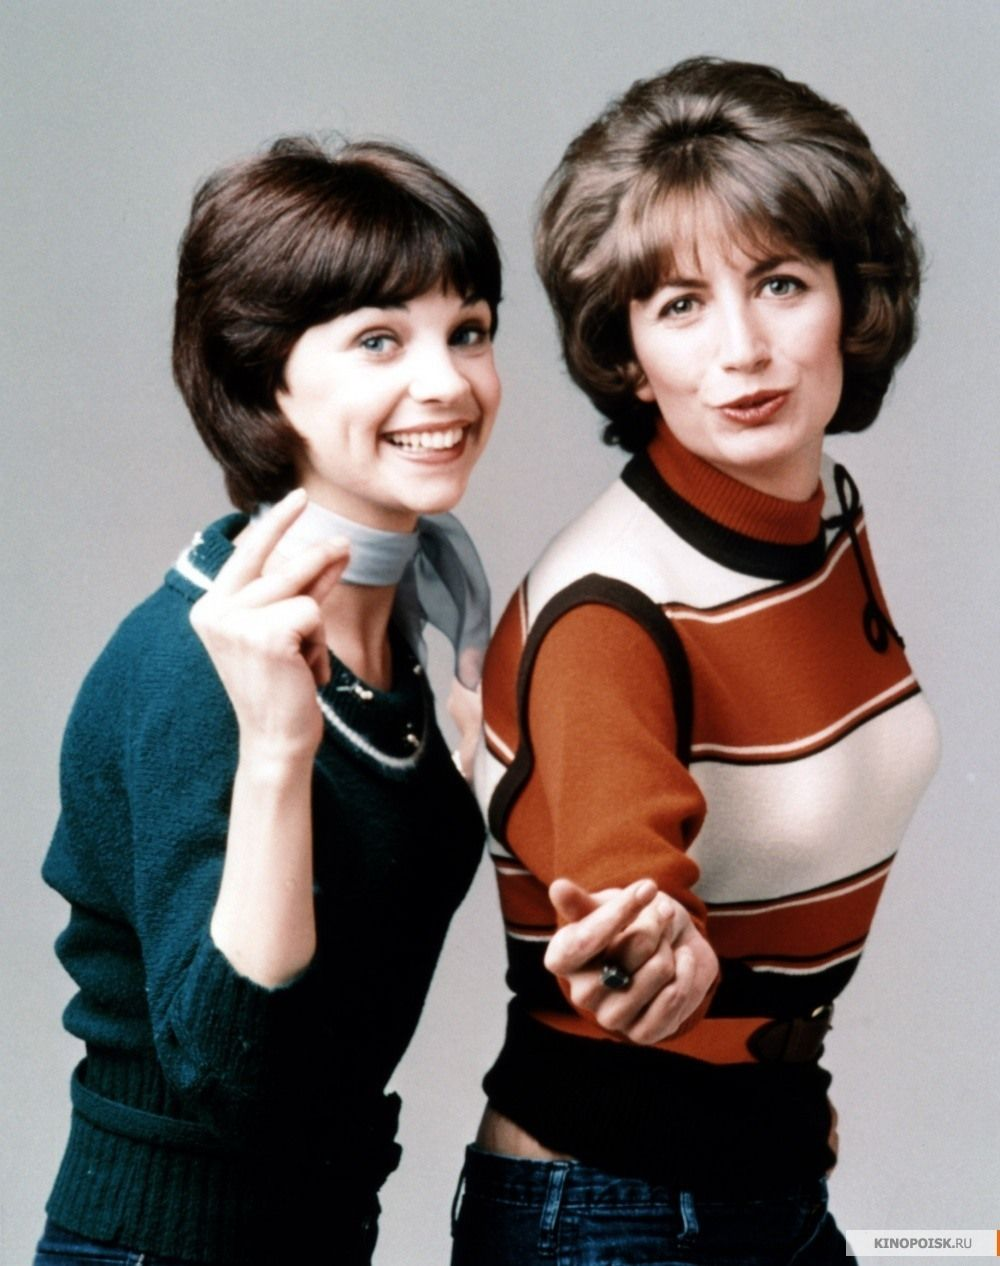 Lyrics to laverne and shirley show